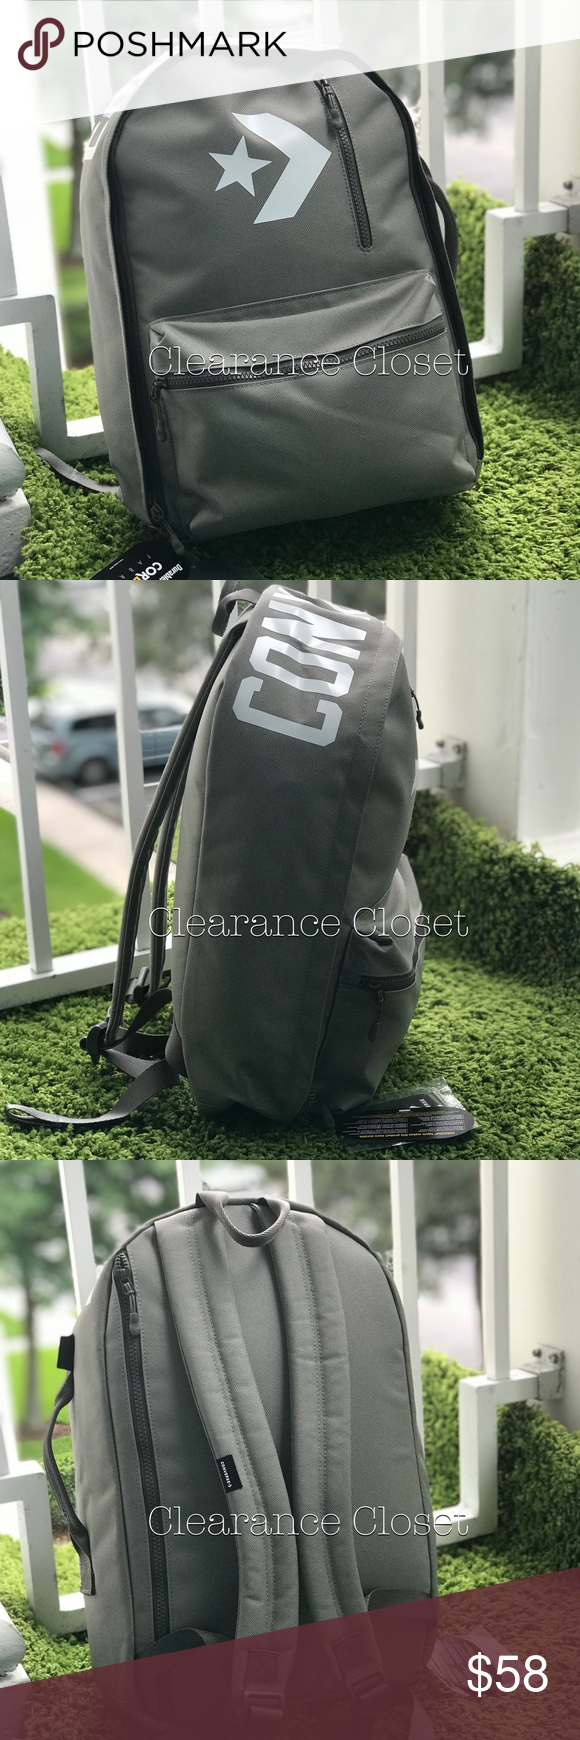 0999e0cdbb NWT Converse Street 22 BackpackD Marsh Grey Unisex Brand new with tag.  Price is firm! No trades. Materials: fabric - Textile, Has pocket for  laptop ...